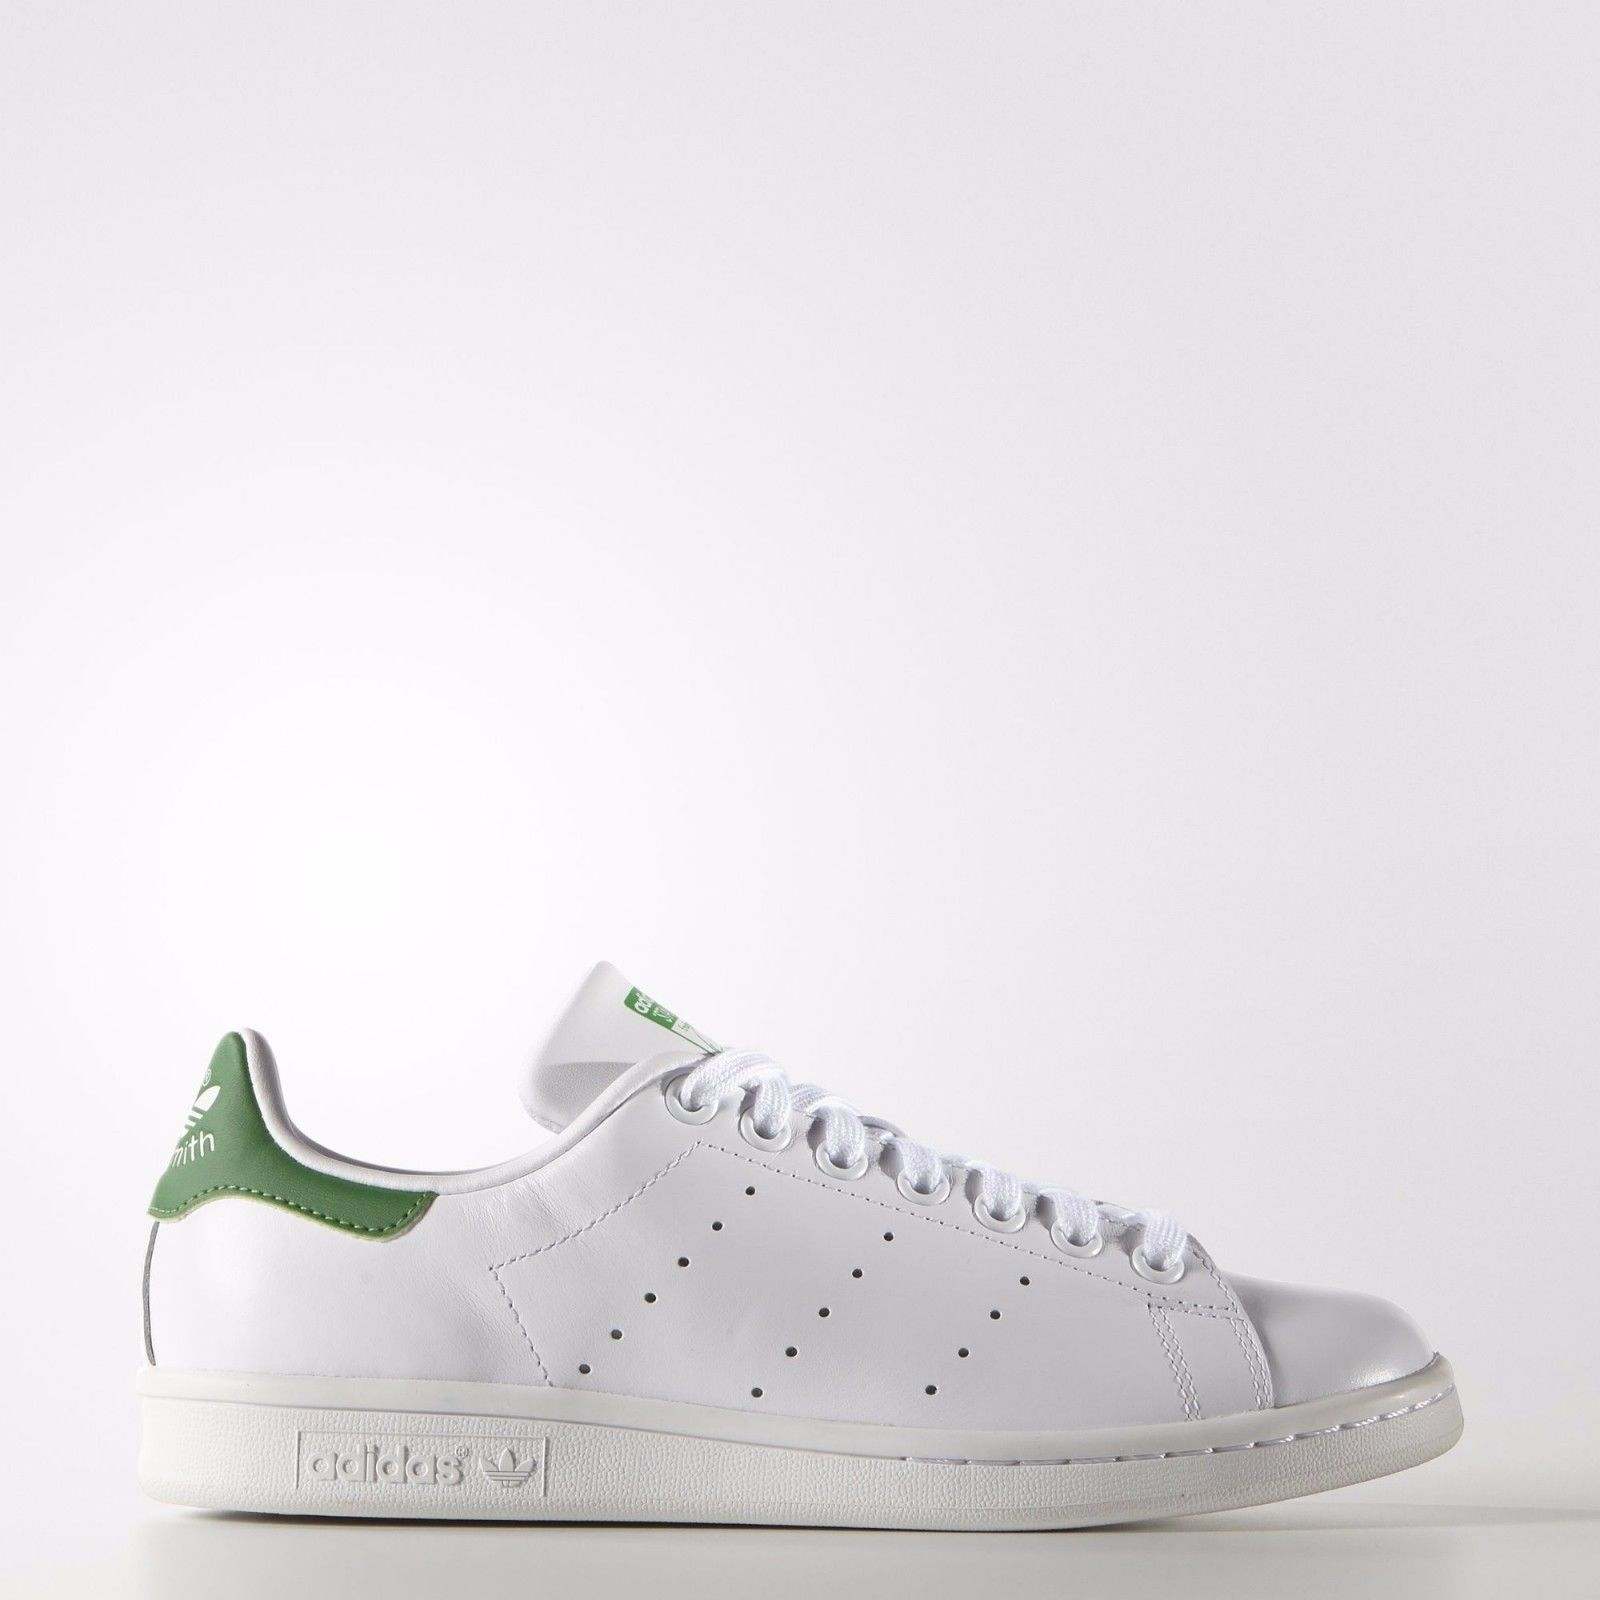 adidas stan smith white shoes clang armory center